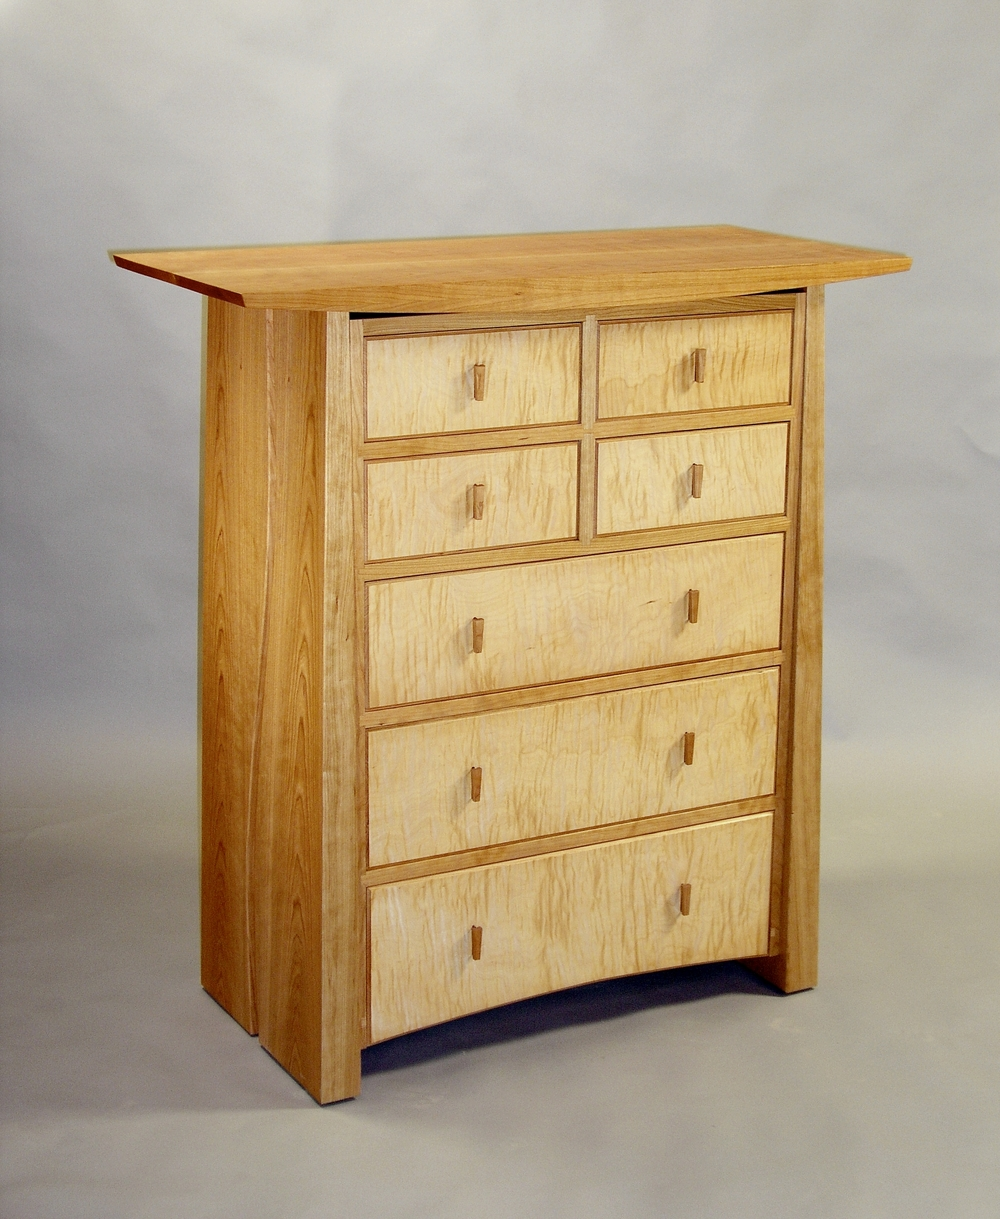 7 Drawer Nightstand in birdseye maple and cherry